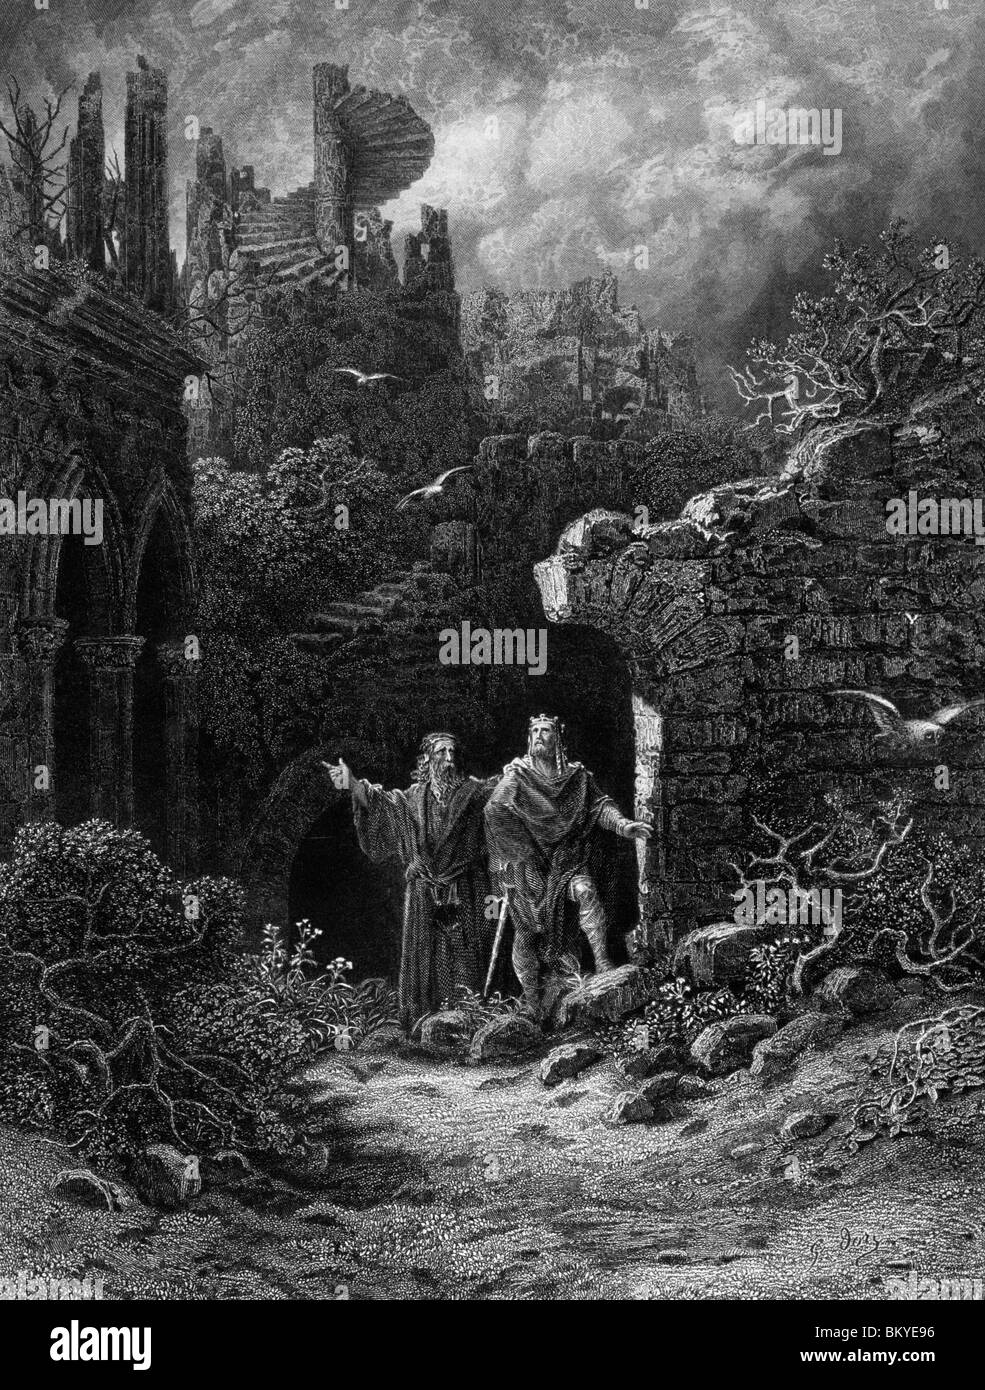 Yniol showing Prince Geraint ruined castle  by Gustave Dore  from Idylls of the King  (1832-1883)  USA  Illinois - Stock Image